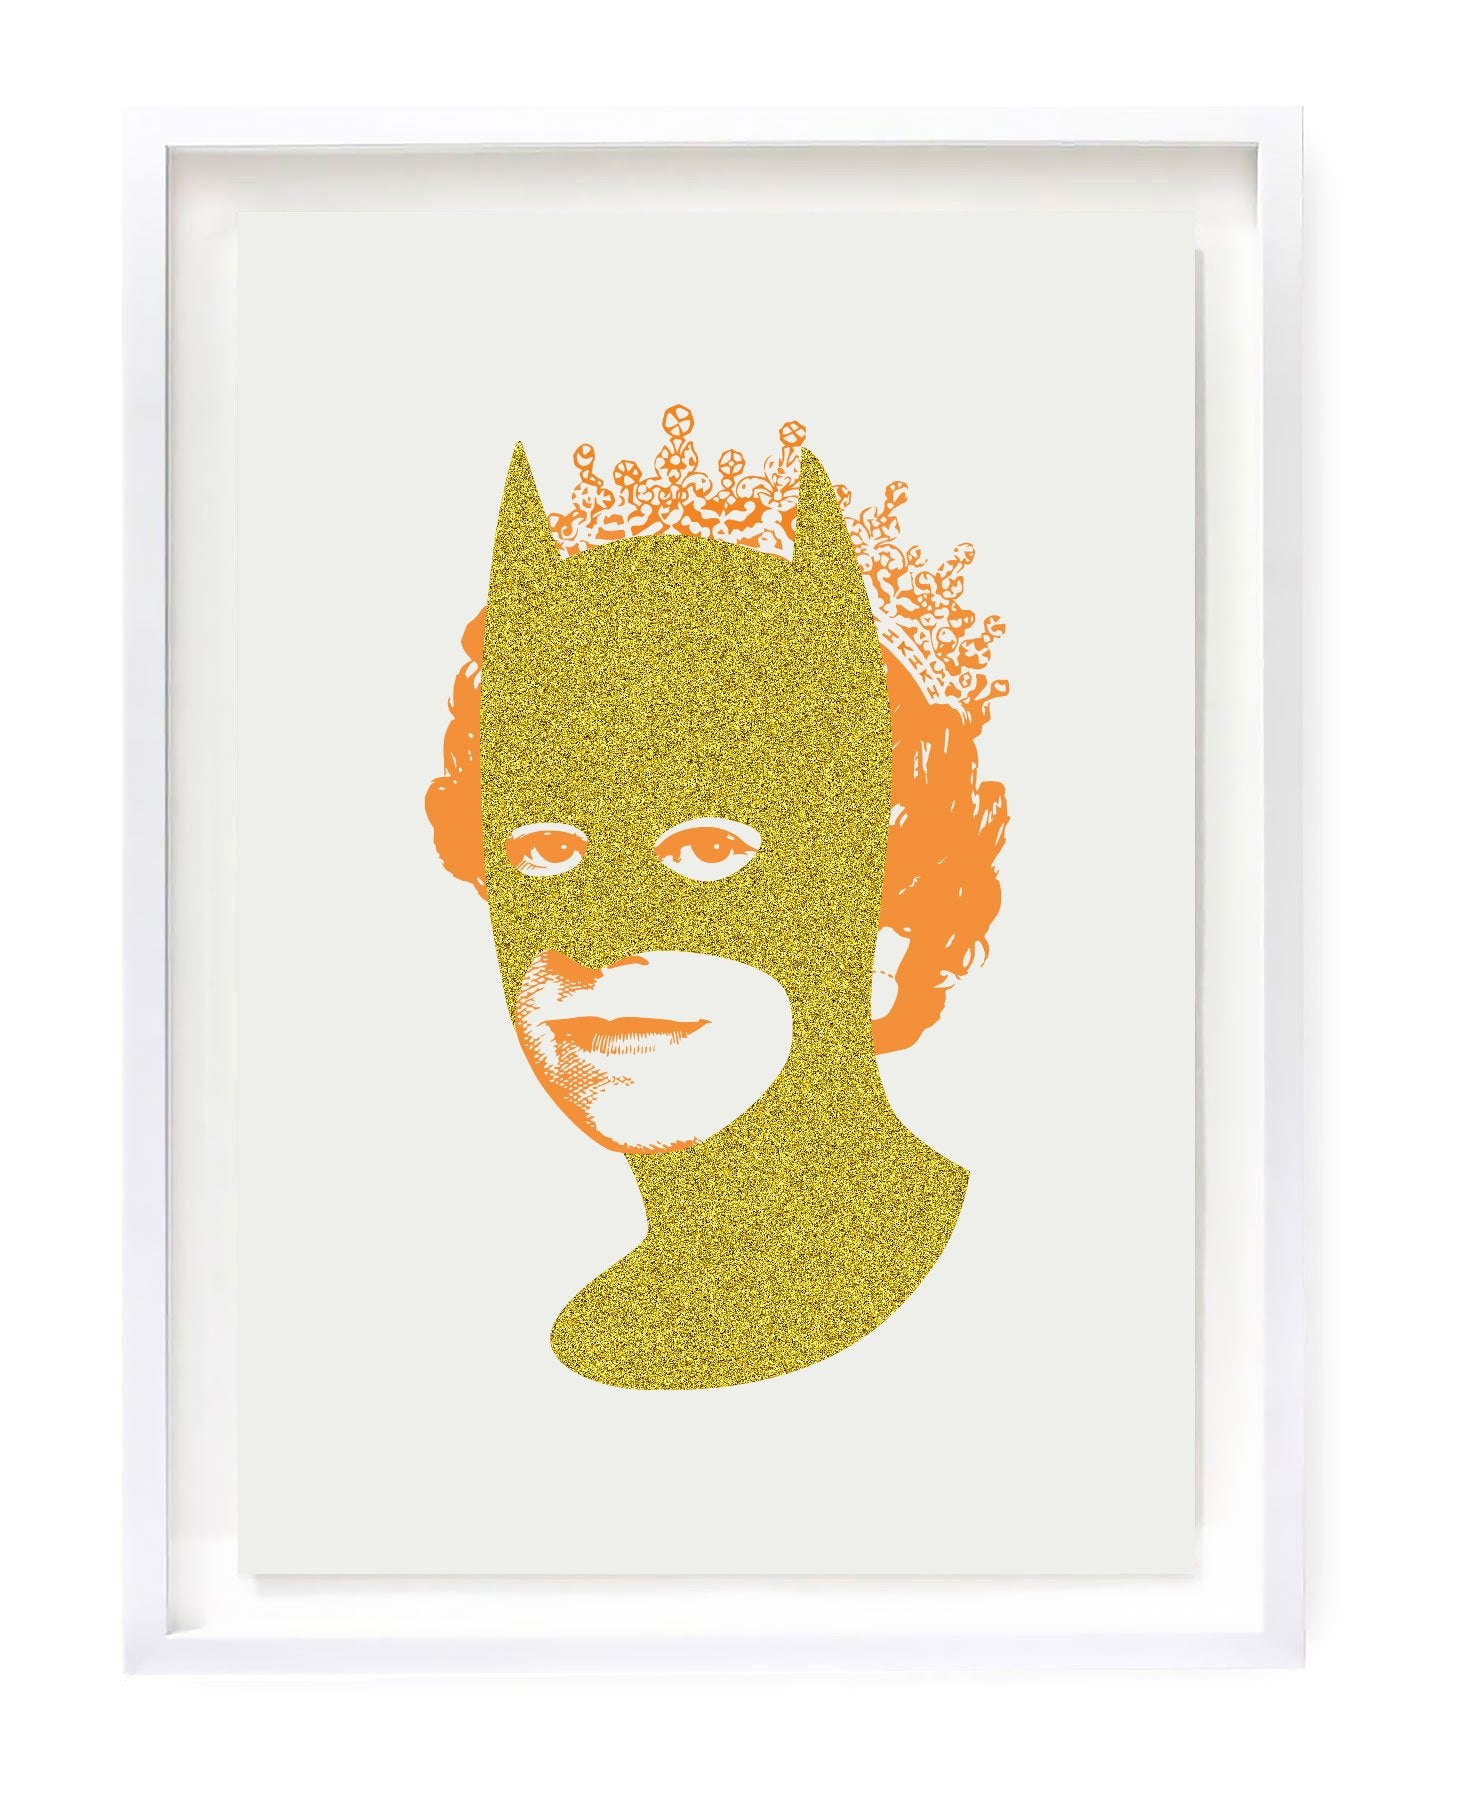 Rich Enough to be Batman - Gold Glitter and Neon Orange Limited Edition By Heath Kane